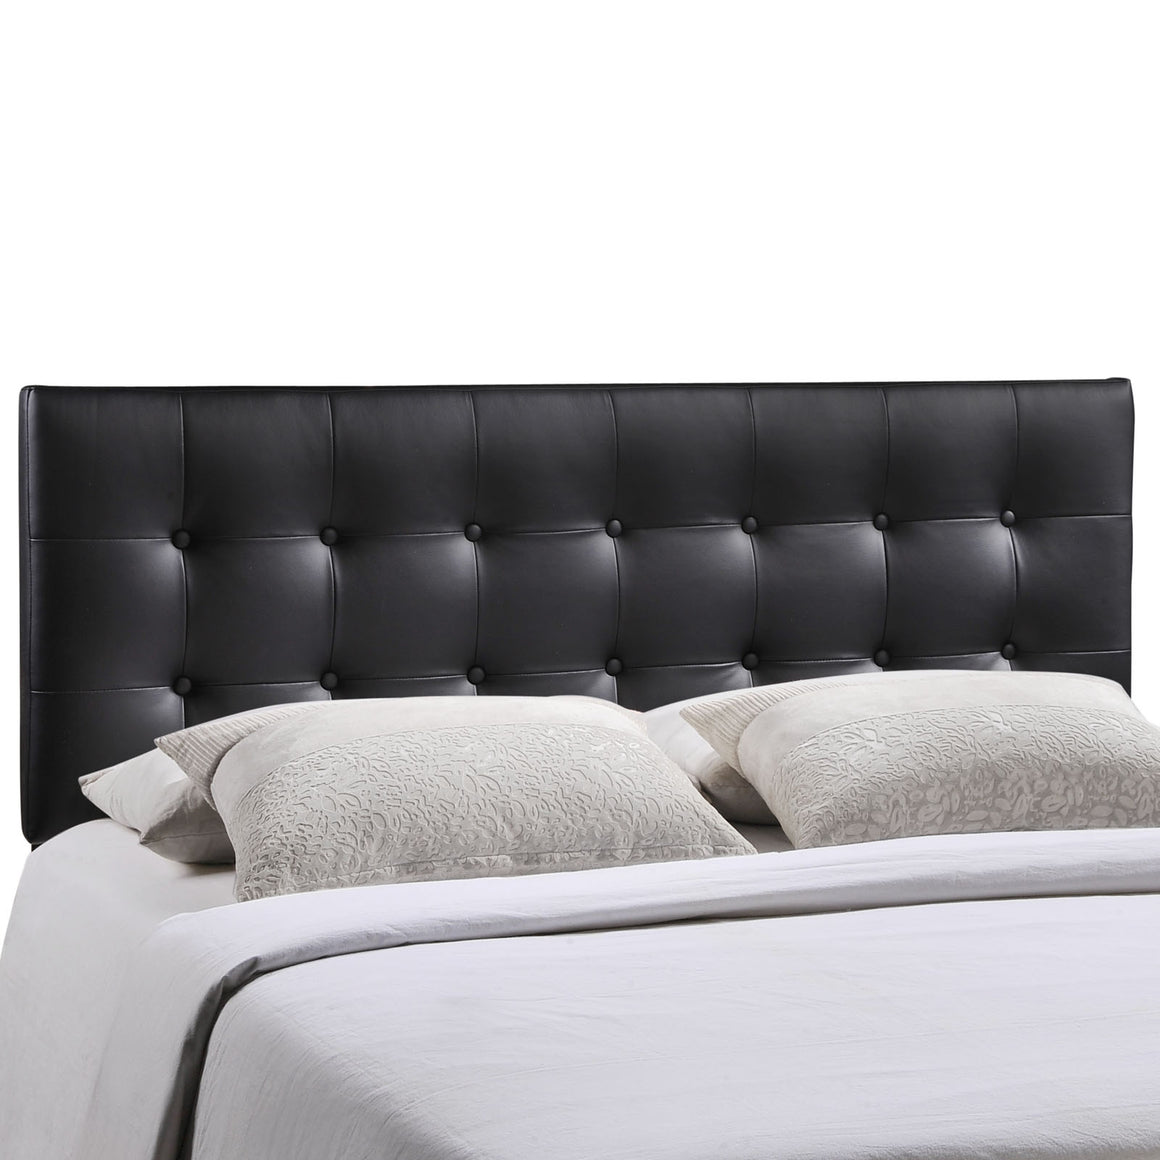 Emily Queen Vinyl Headboard - taylor ray decor